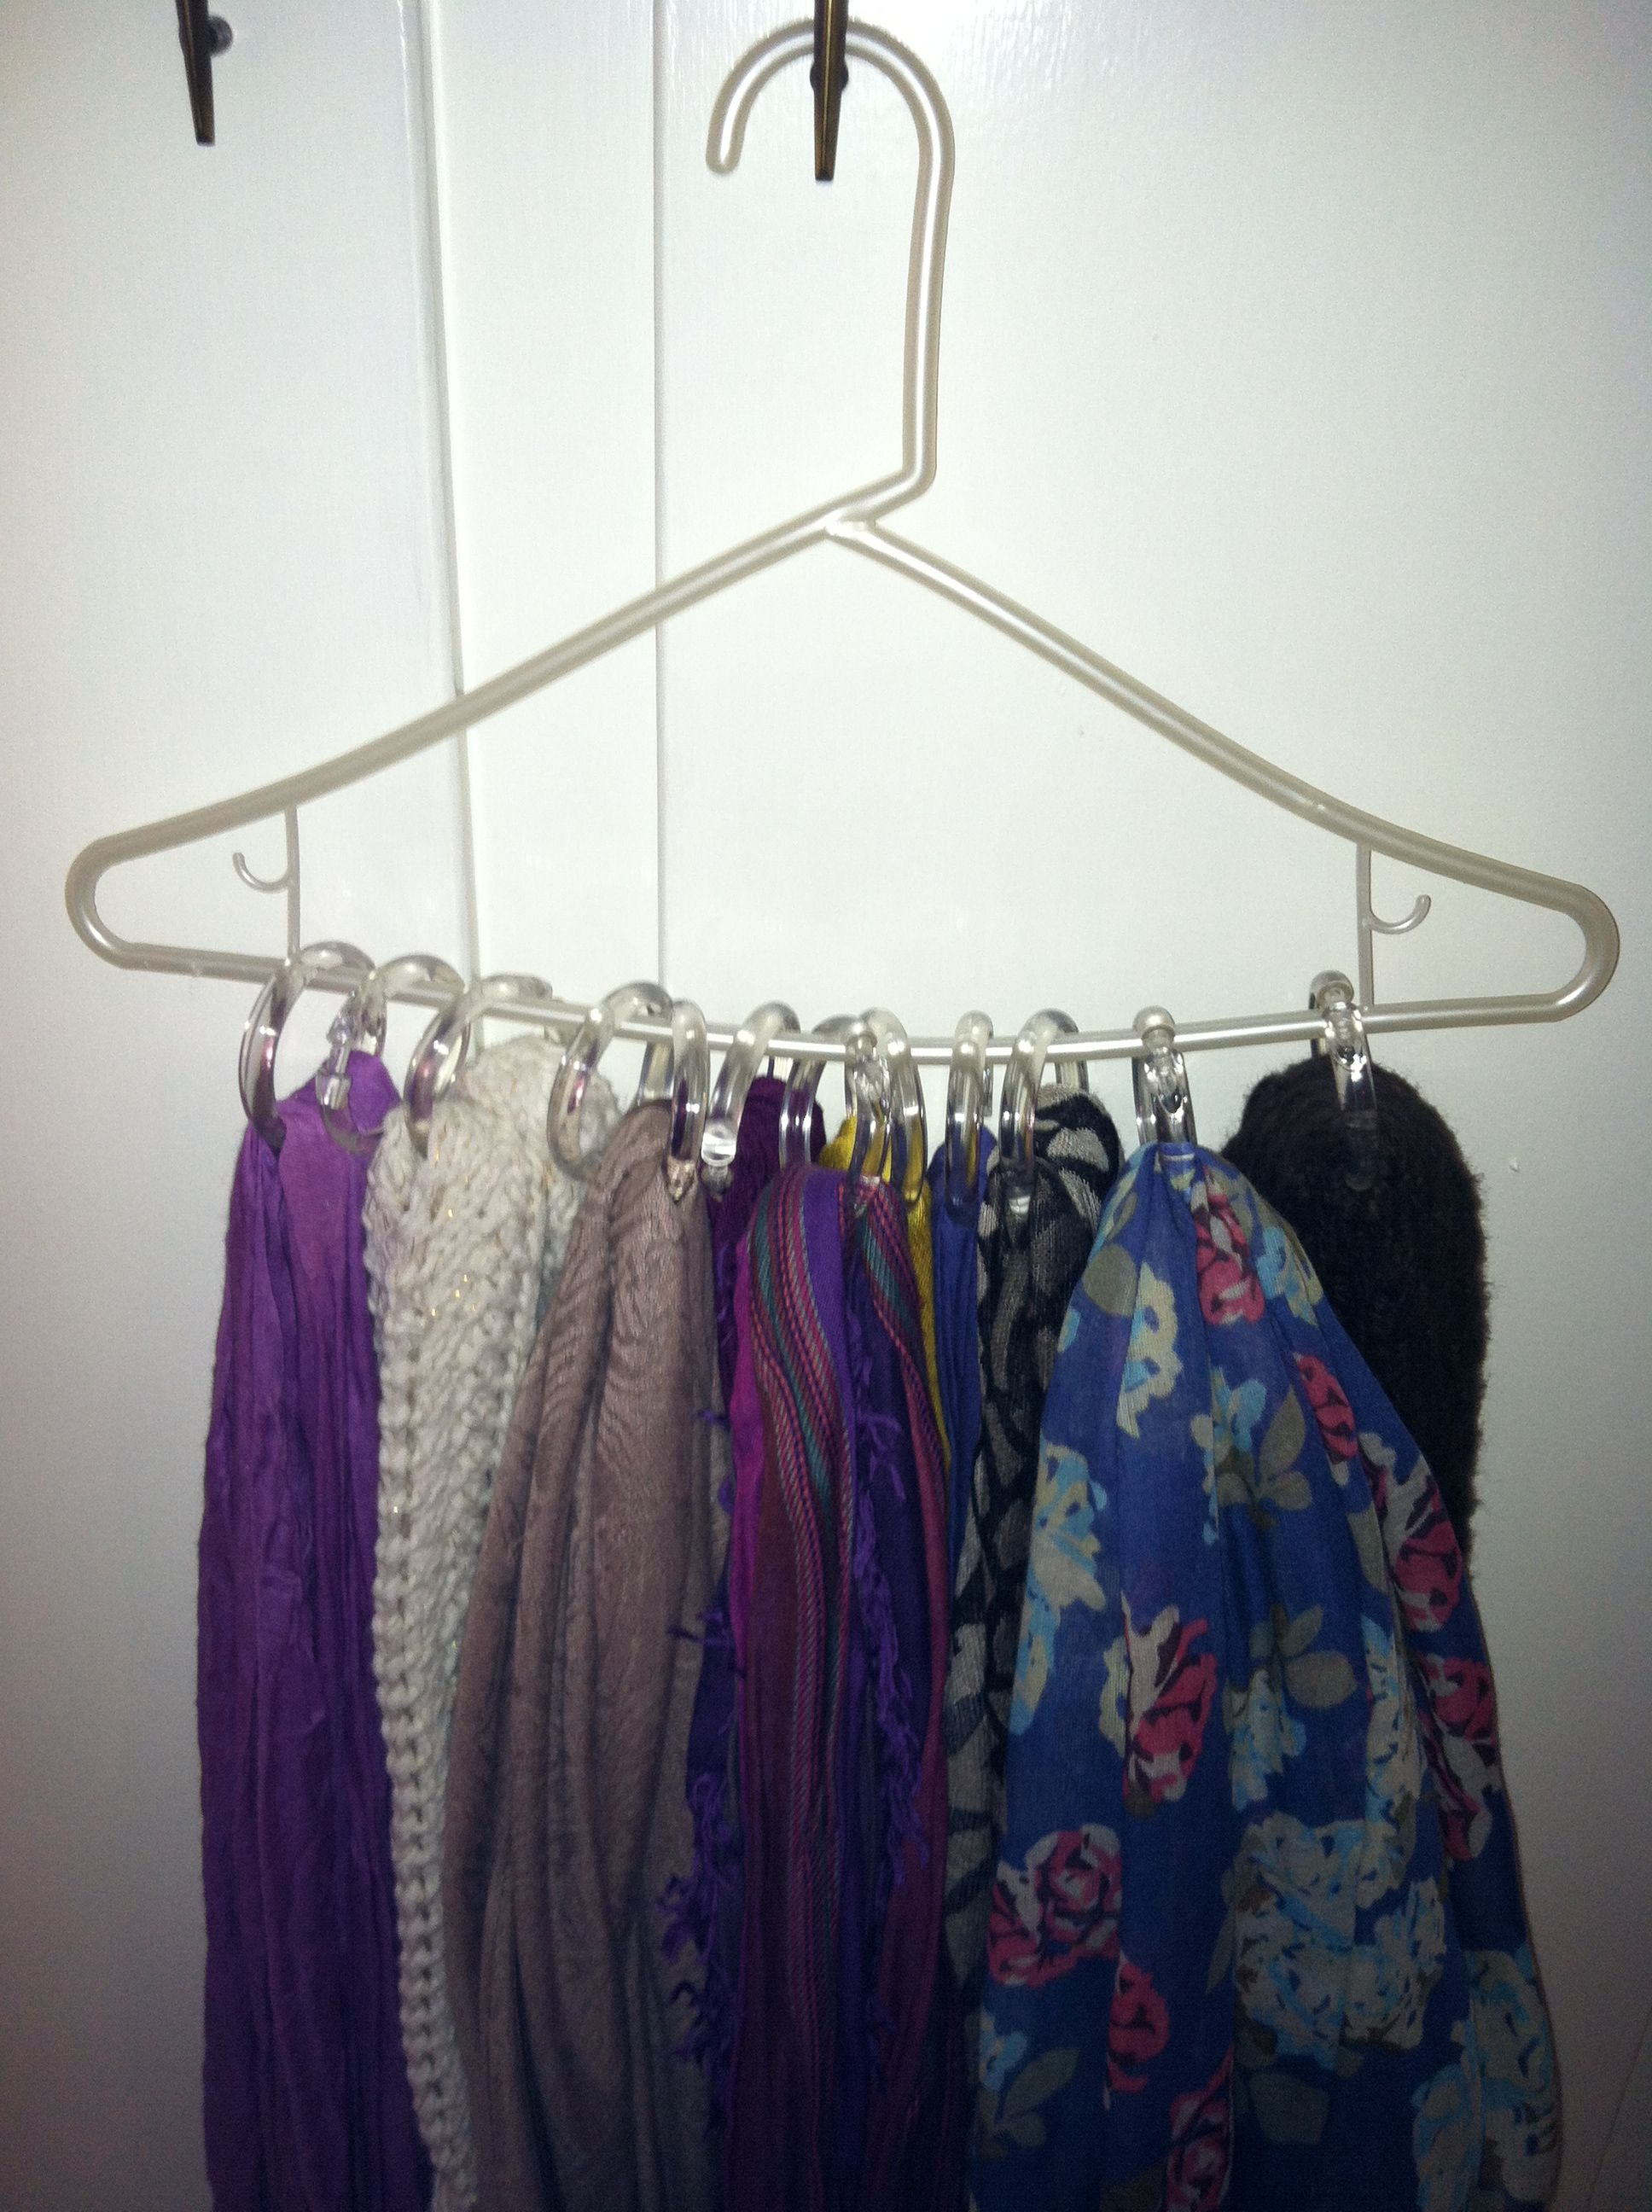 My scarves are organized!